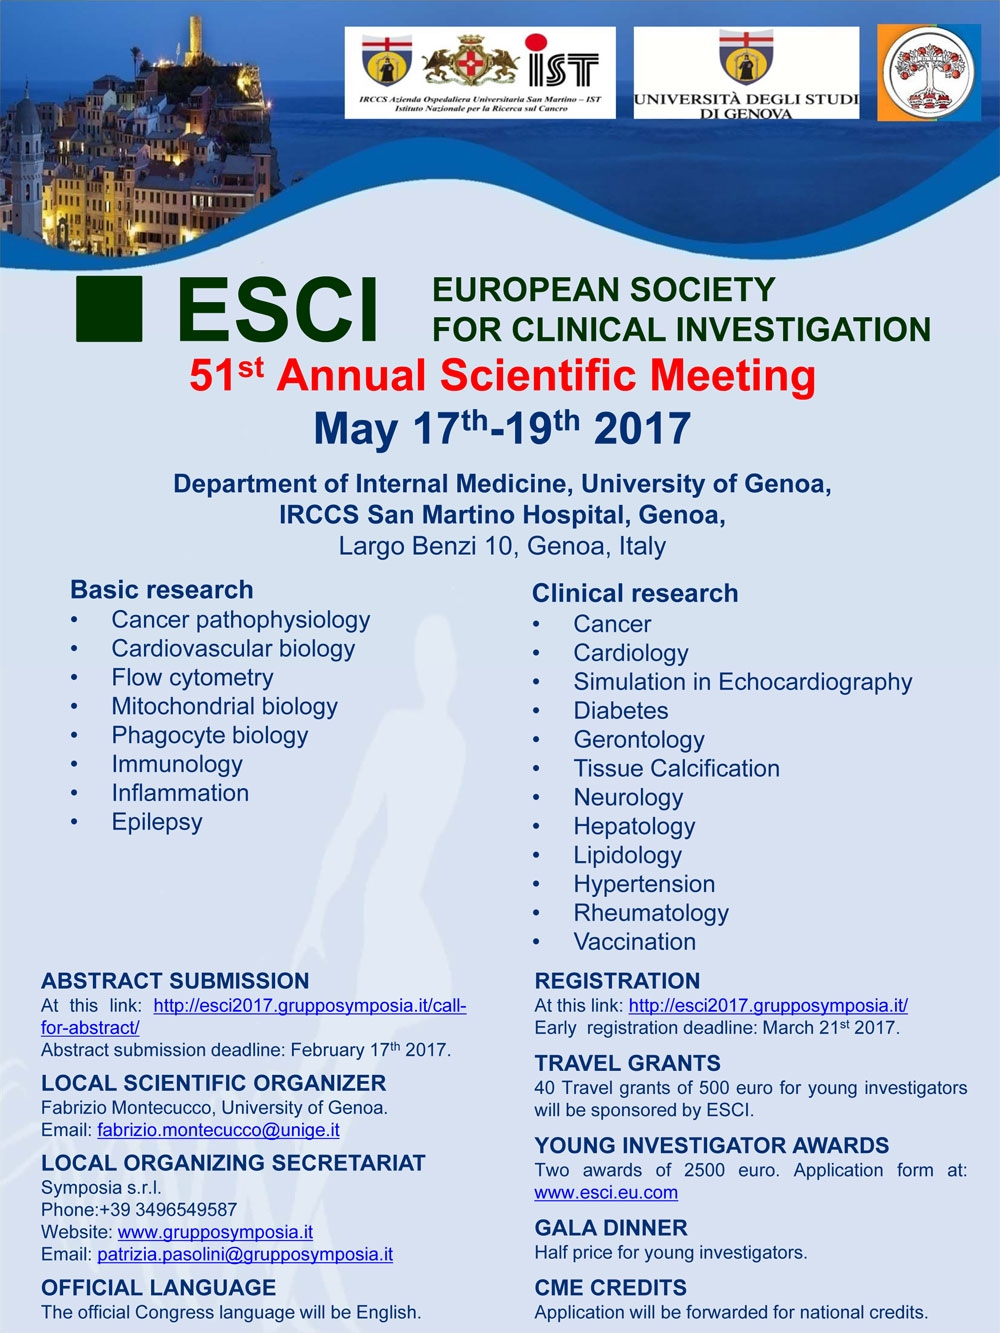 51st Annual Scientific Meeting of the European Society for Clinical Investigation (ESCI)